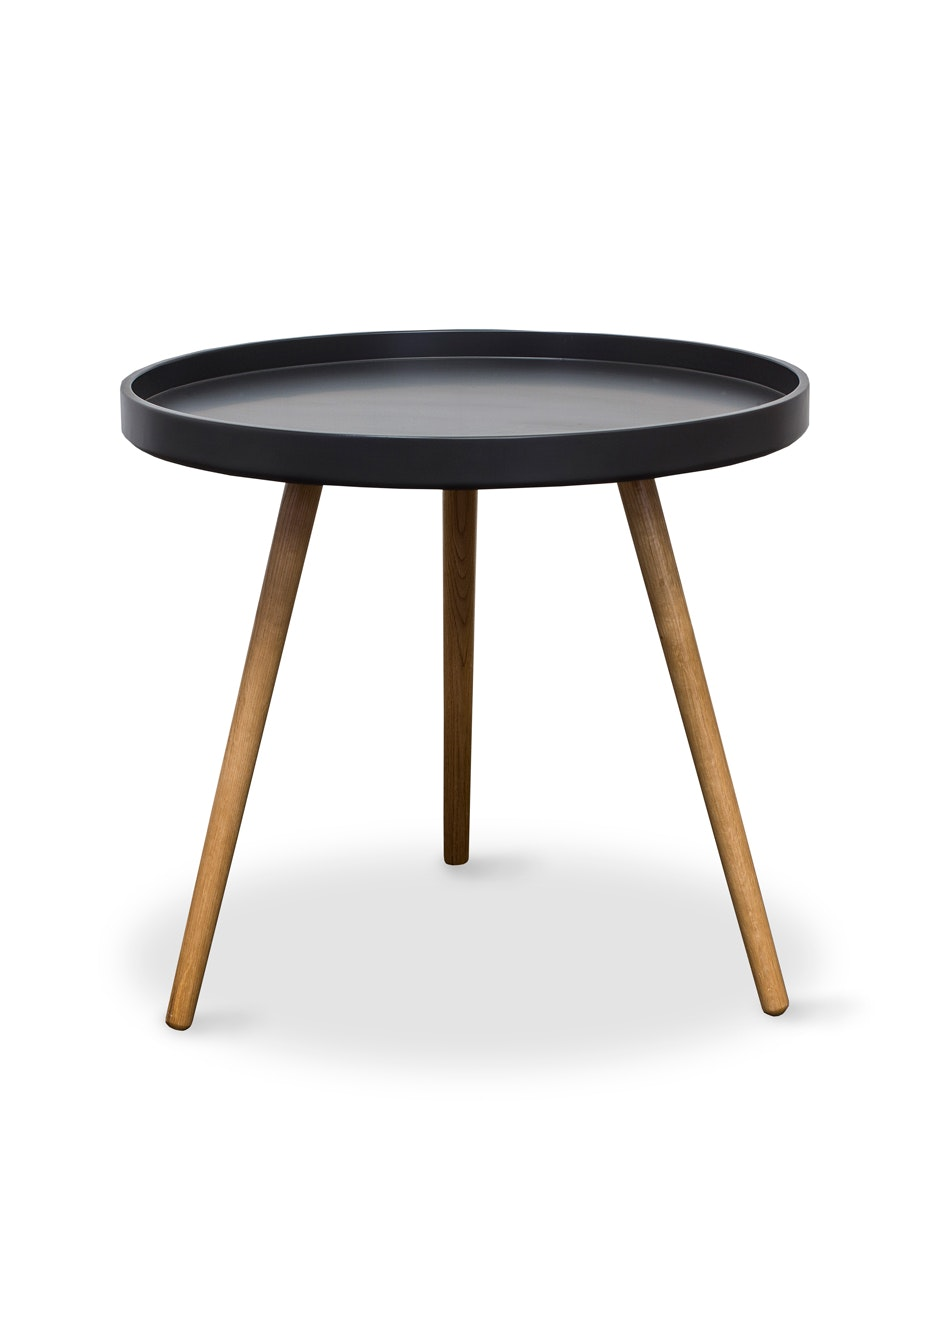 Furniture By Design - Radius Tray Table- Graphite